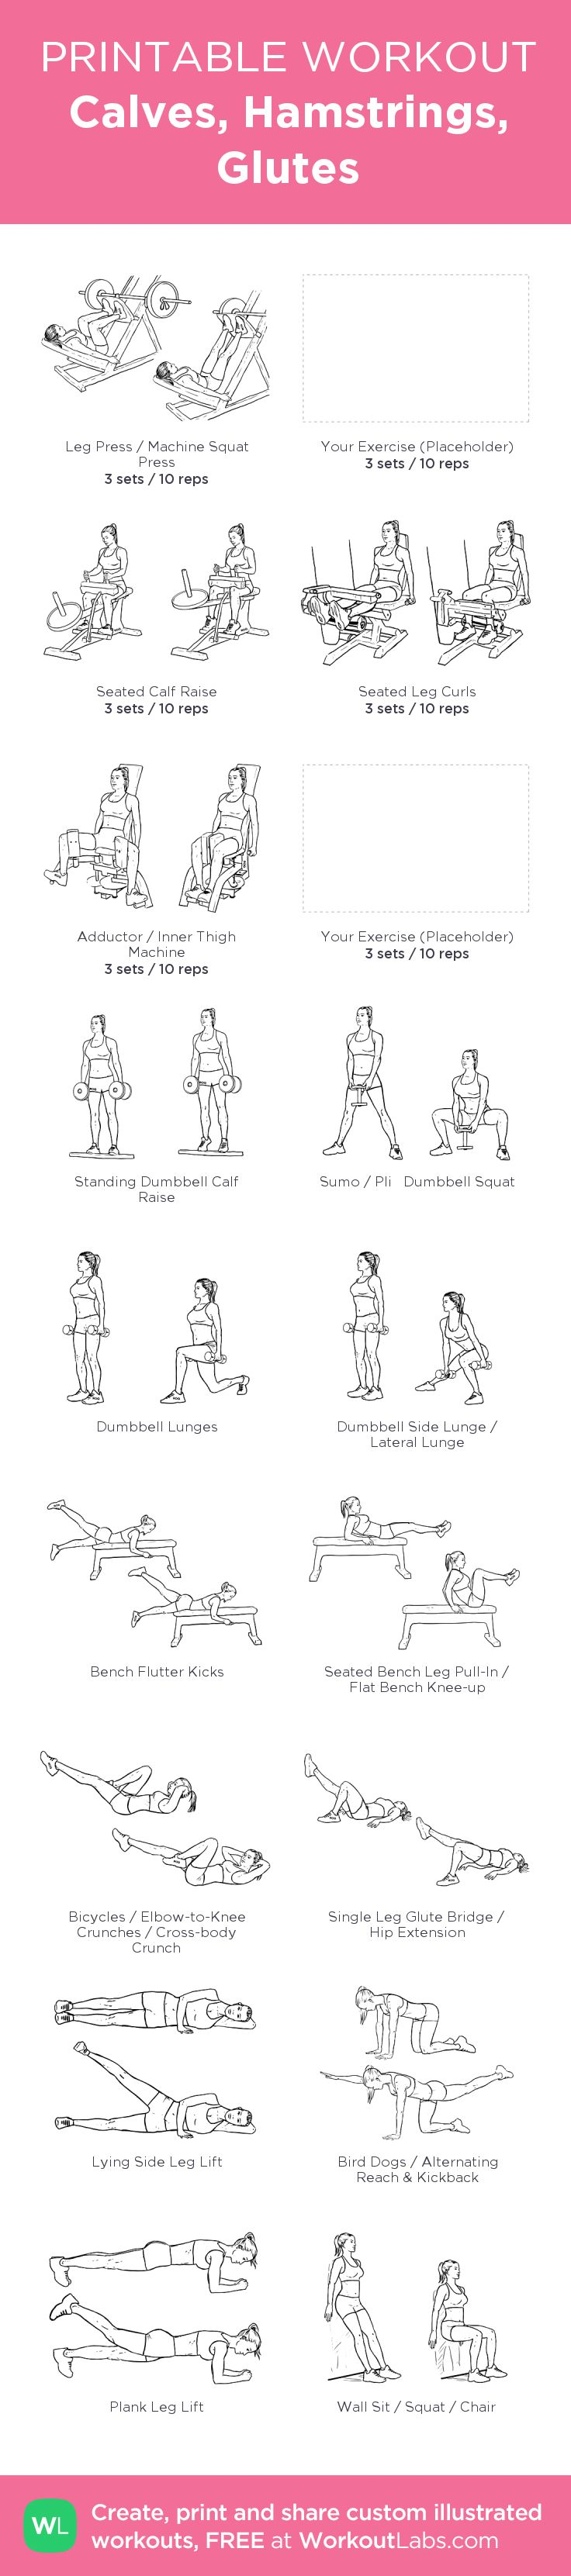 Calves, Hamstrings, Glutes:my visual workout created at WorkoutLabs.com